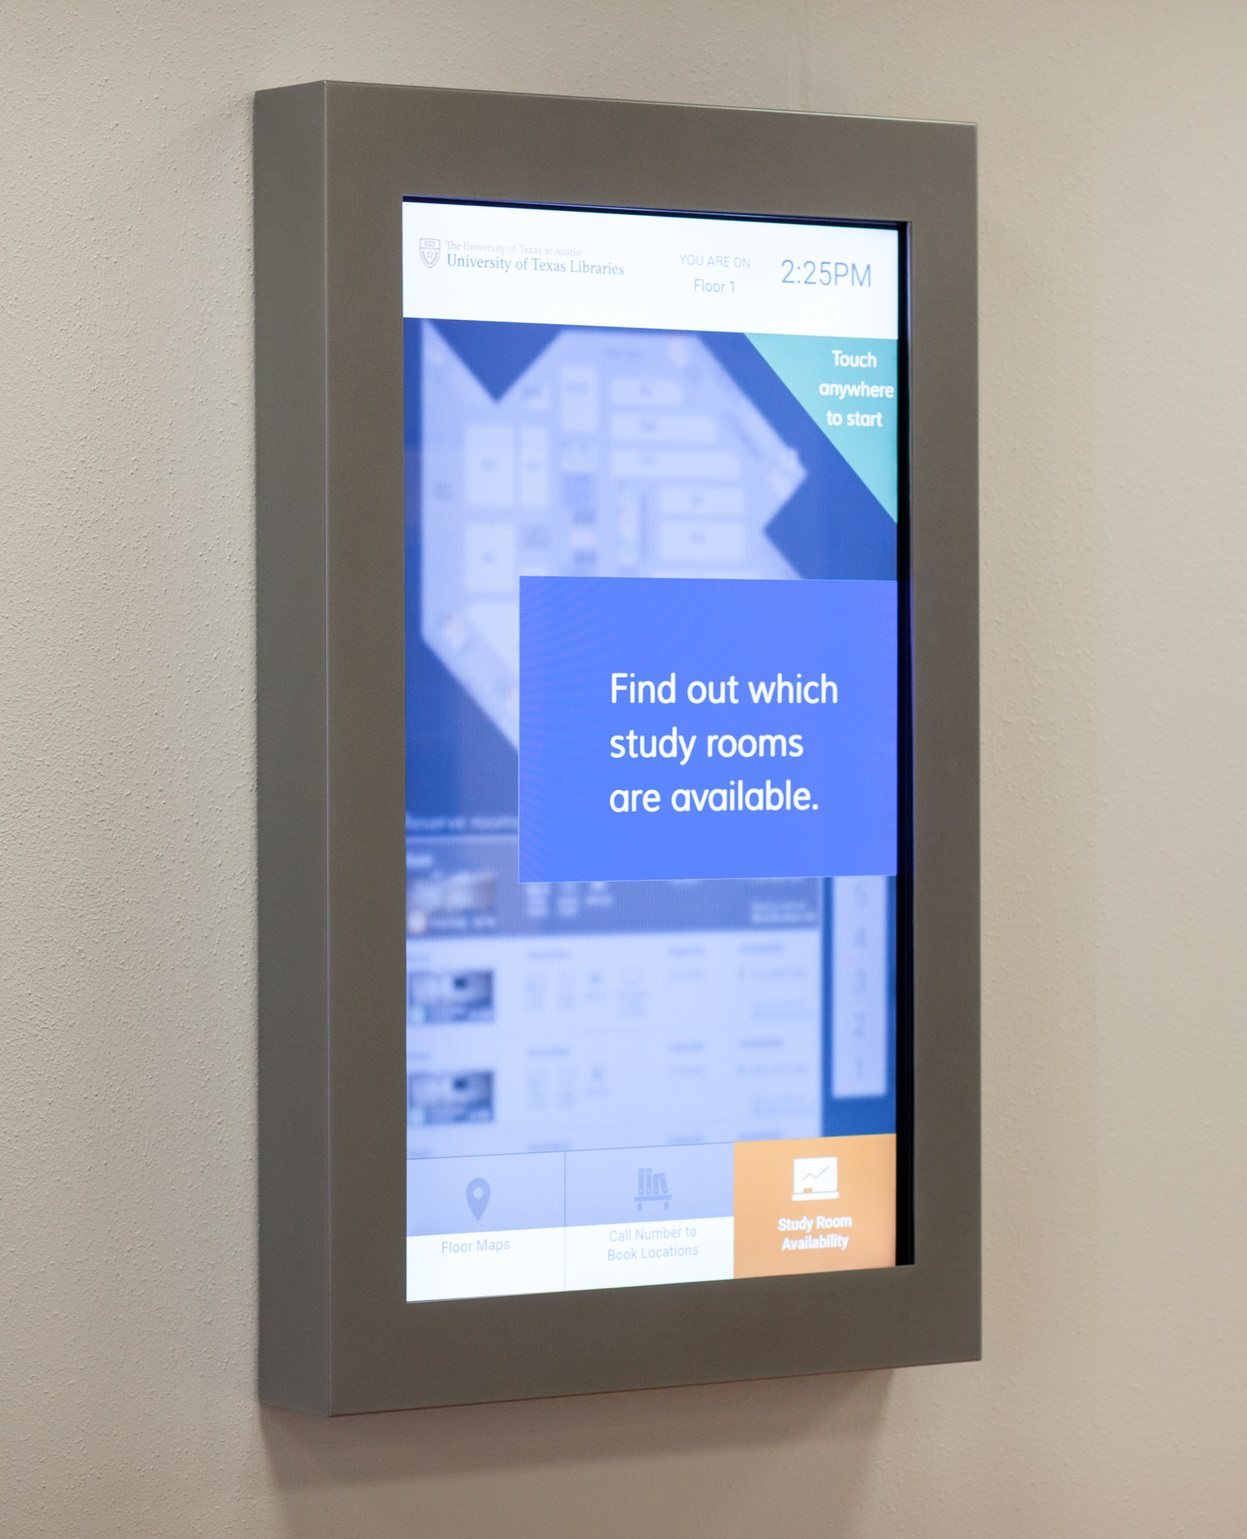 touchscreen kiosk with text, find out which study rooms are available